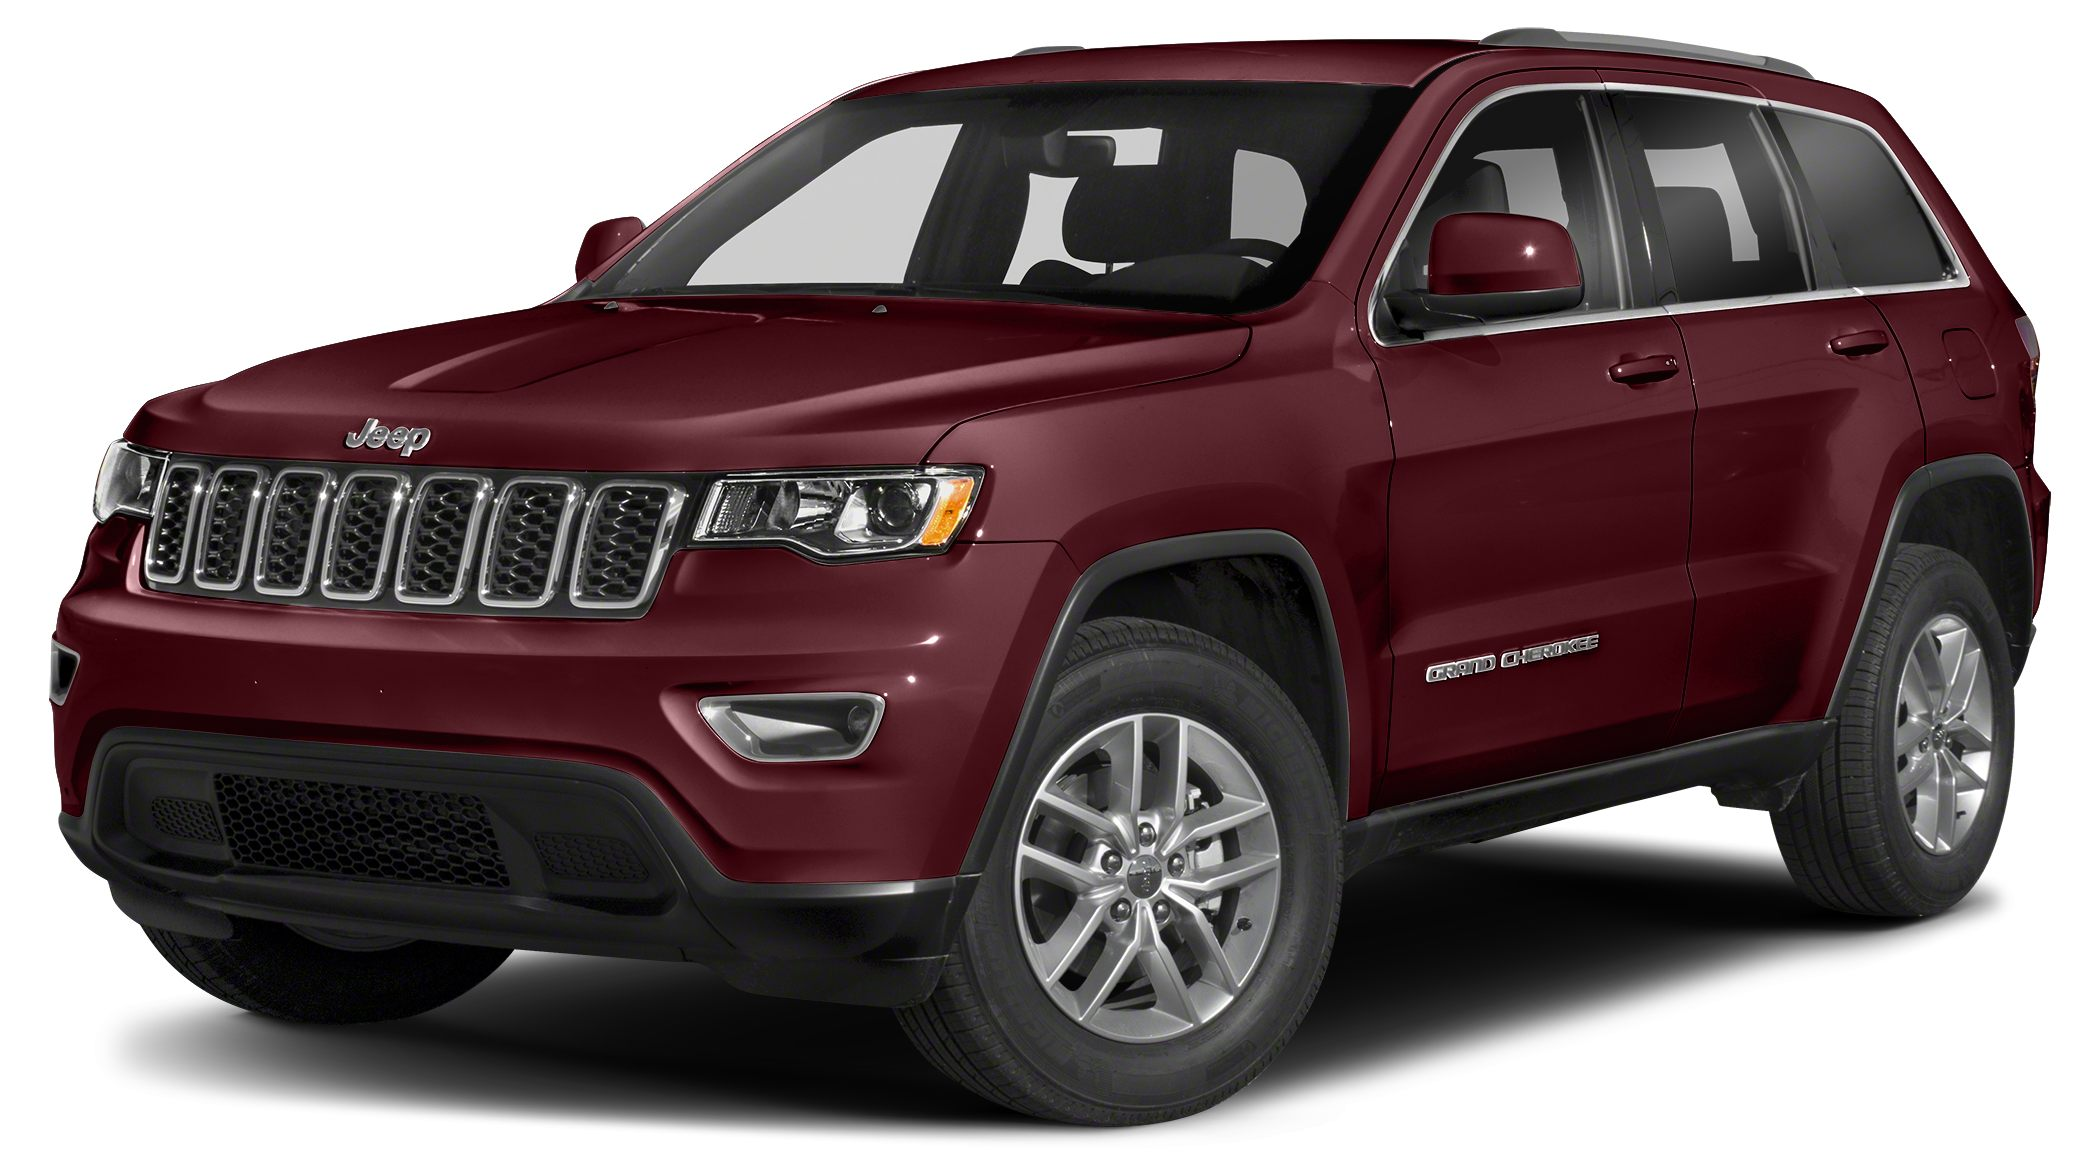 dodge durango sxt vs jeep grand cherokee laredo. Black Bedroom Furniture Sets. Home Design Ideas